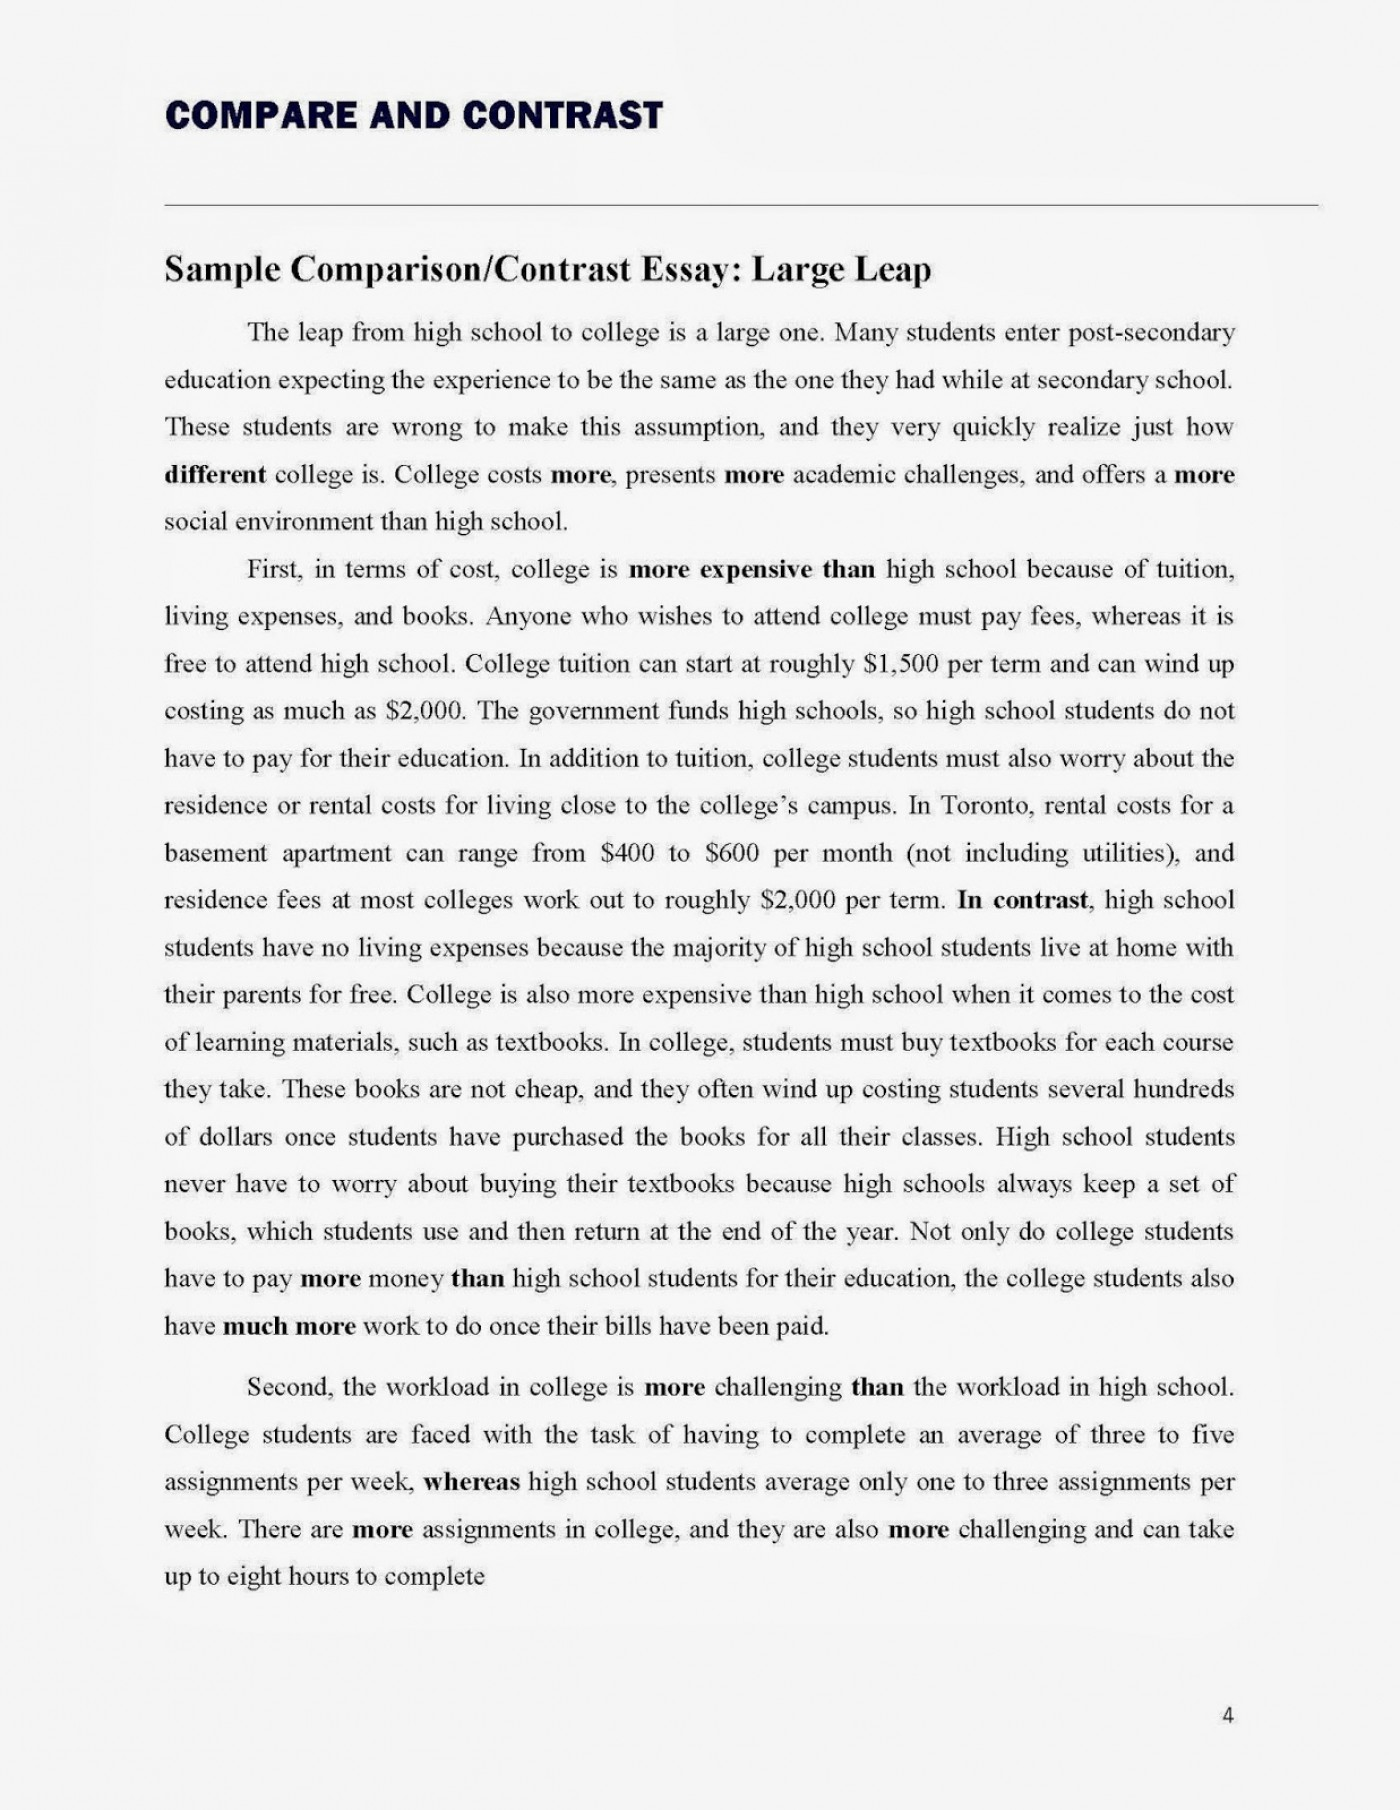 011 Compare And Contrast Essay Compareandcontrastessay Page 4h125 Frightening Prompts 5th Grade Rubric College Ideas 12th 1400